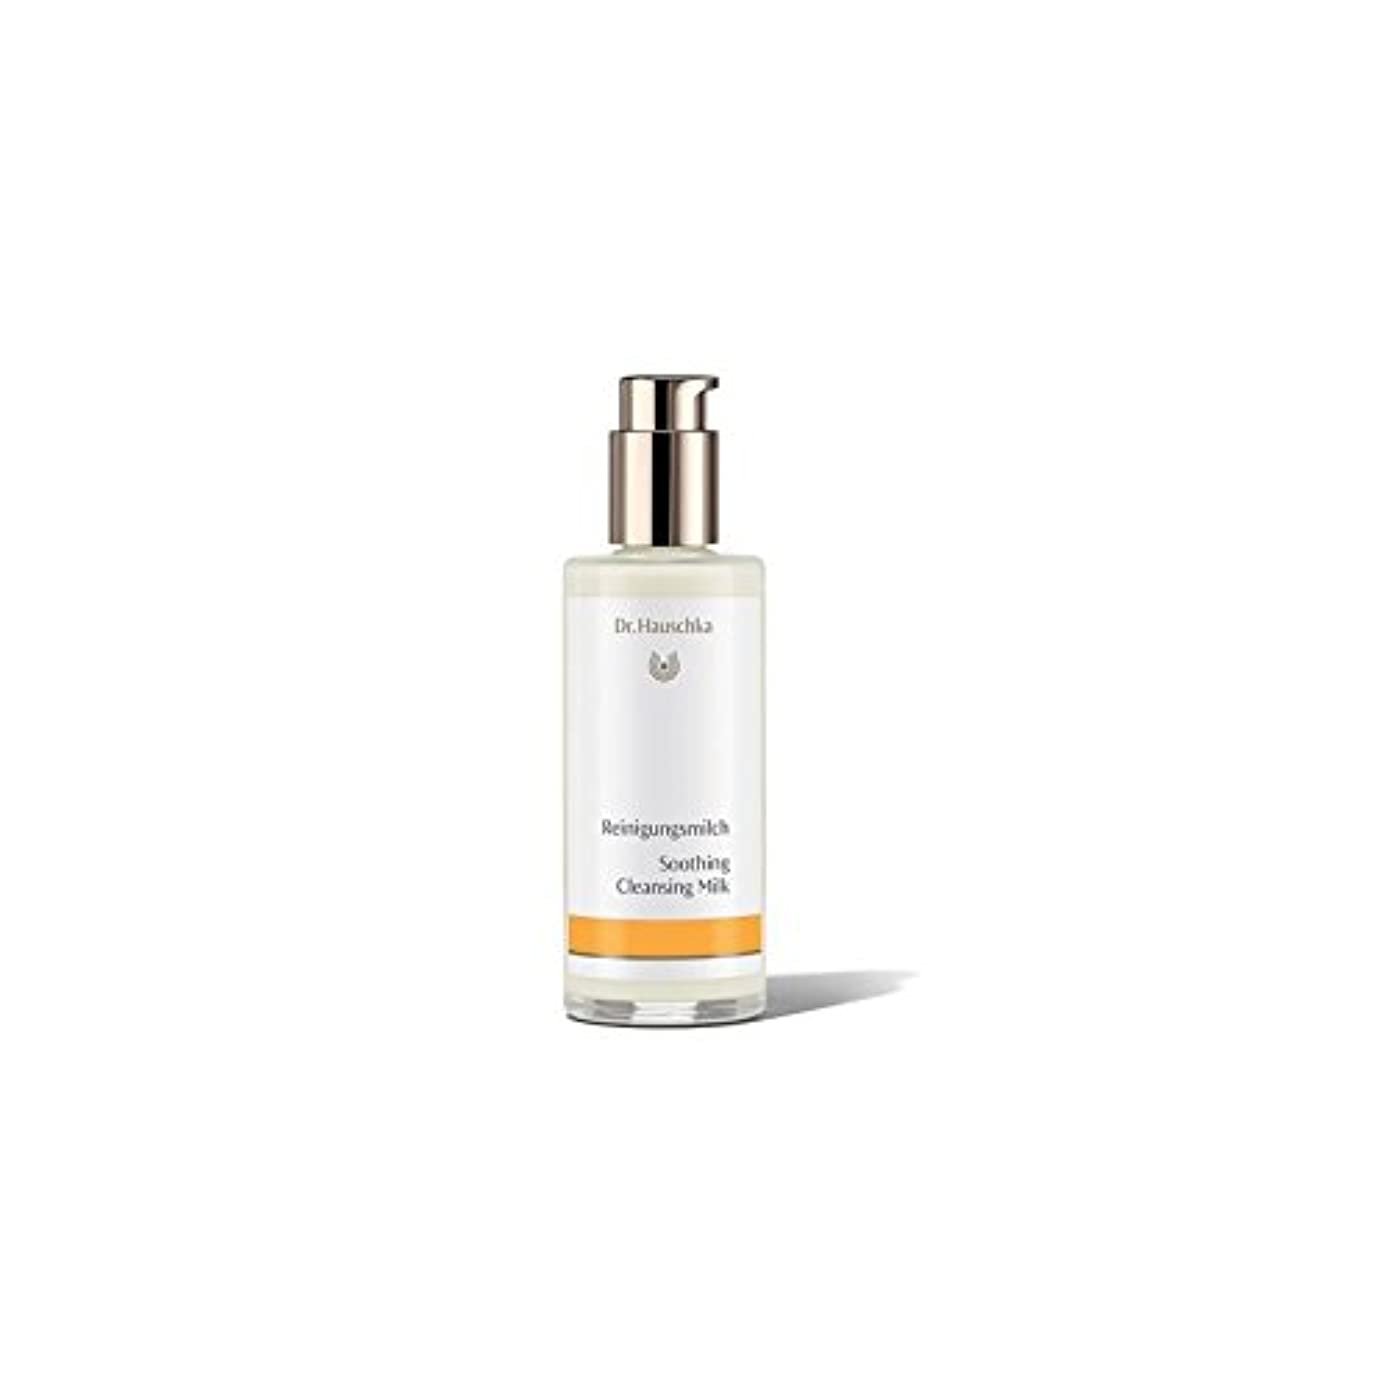 Dr. Hauschka Soothing Cleansing Milk 145ml - ハウシュカなだめるクレンジングミルク145ミリリットル [並行輸入品]